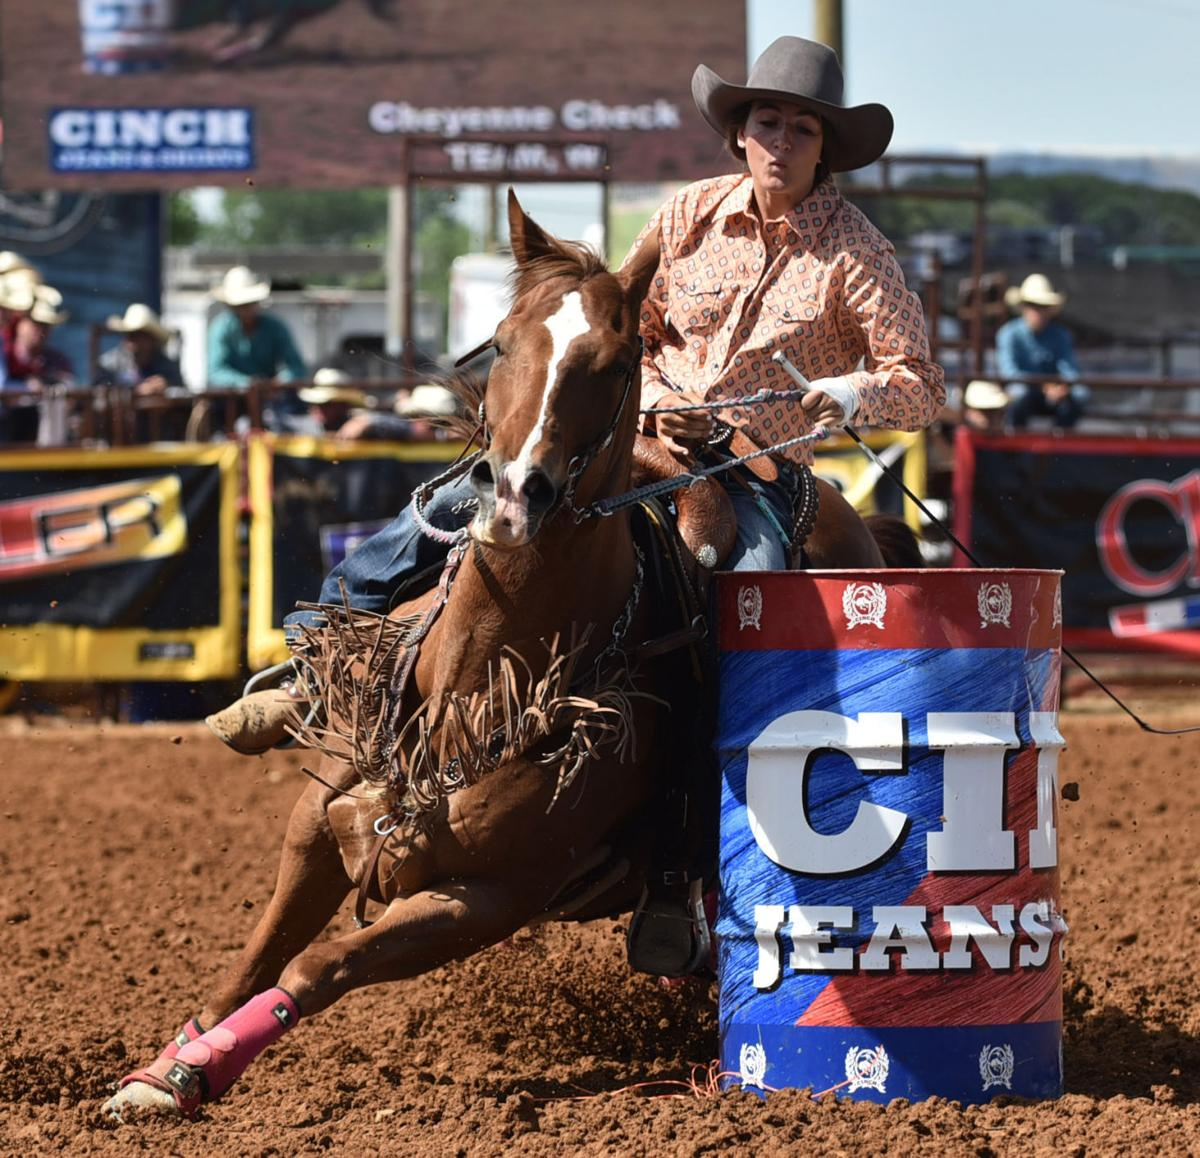 Cheyenne Check To Compete In National Rodeo At Las Vegas